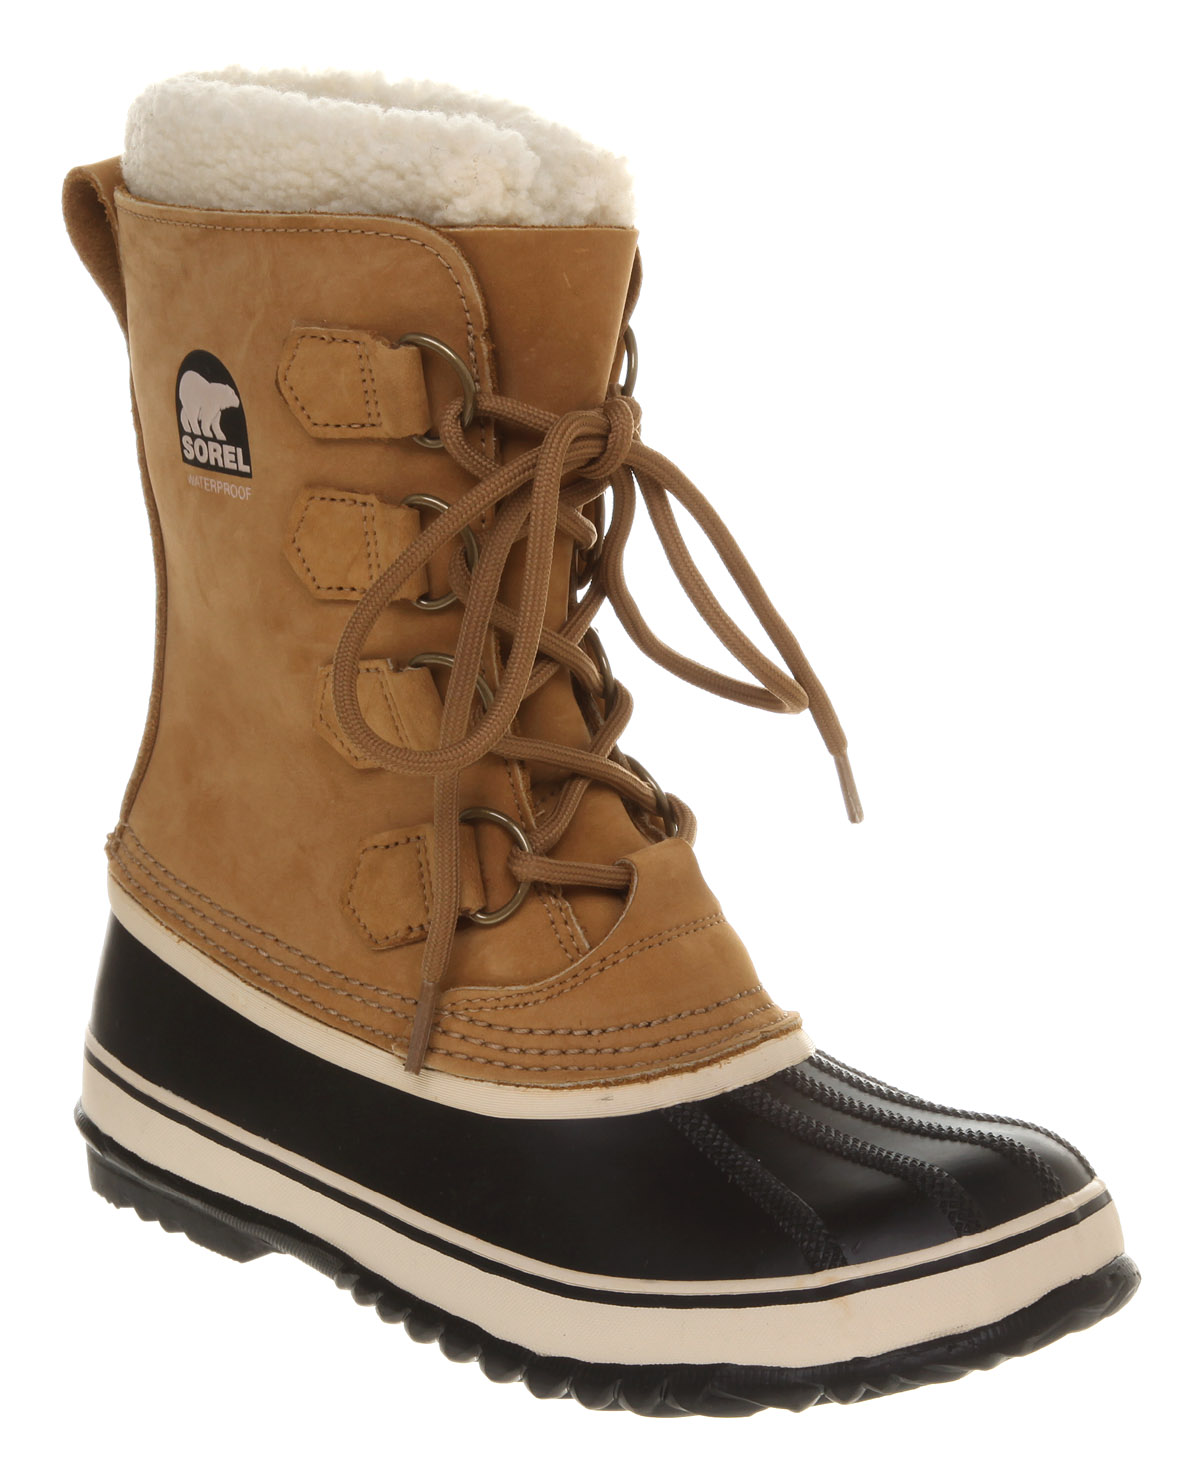 Womens-Sorel-1964-Pac-2-Buff-black-Boots